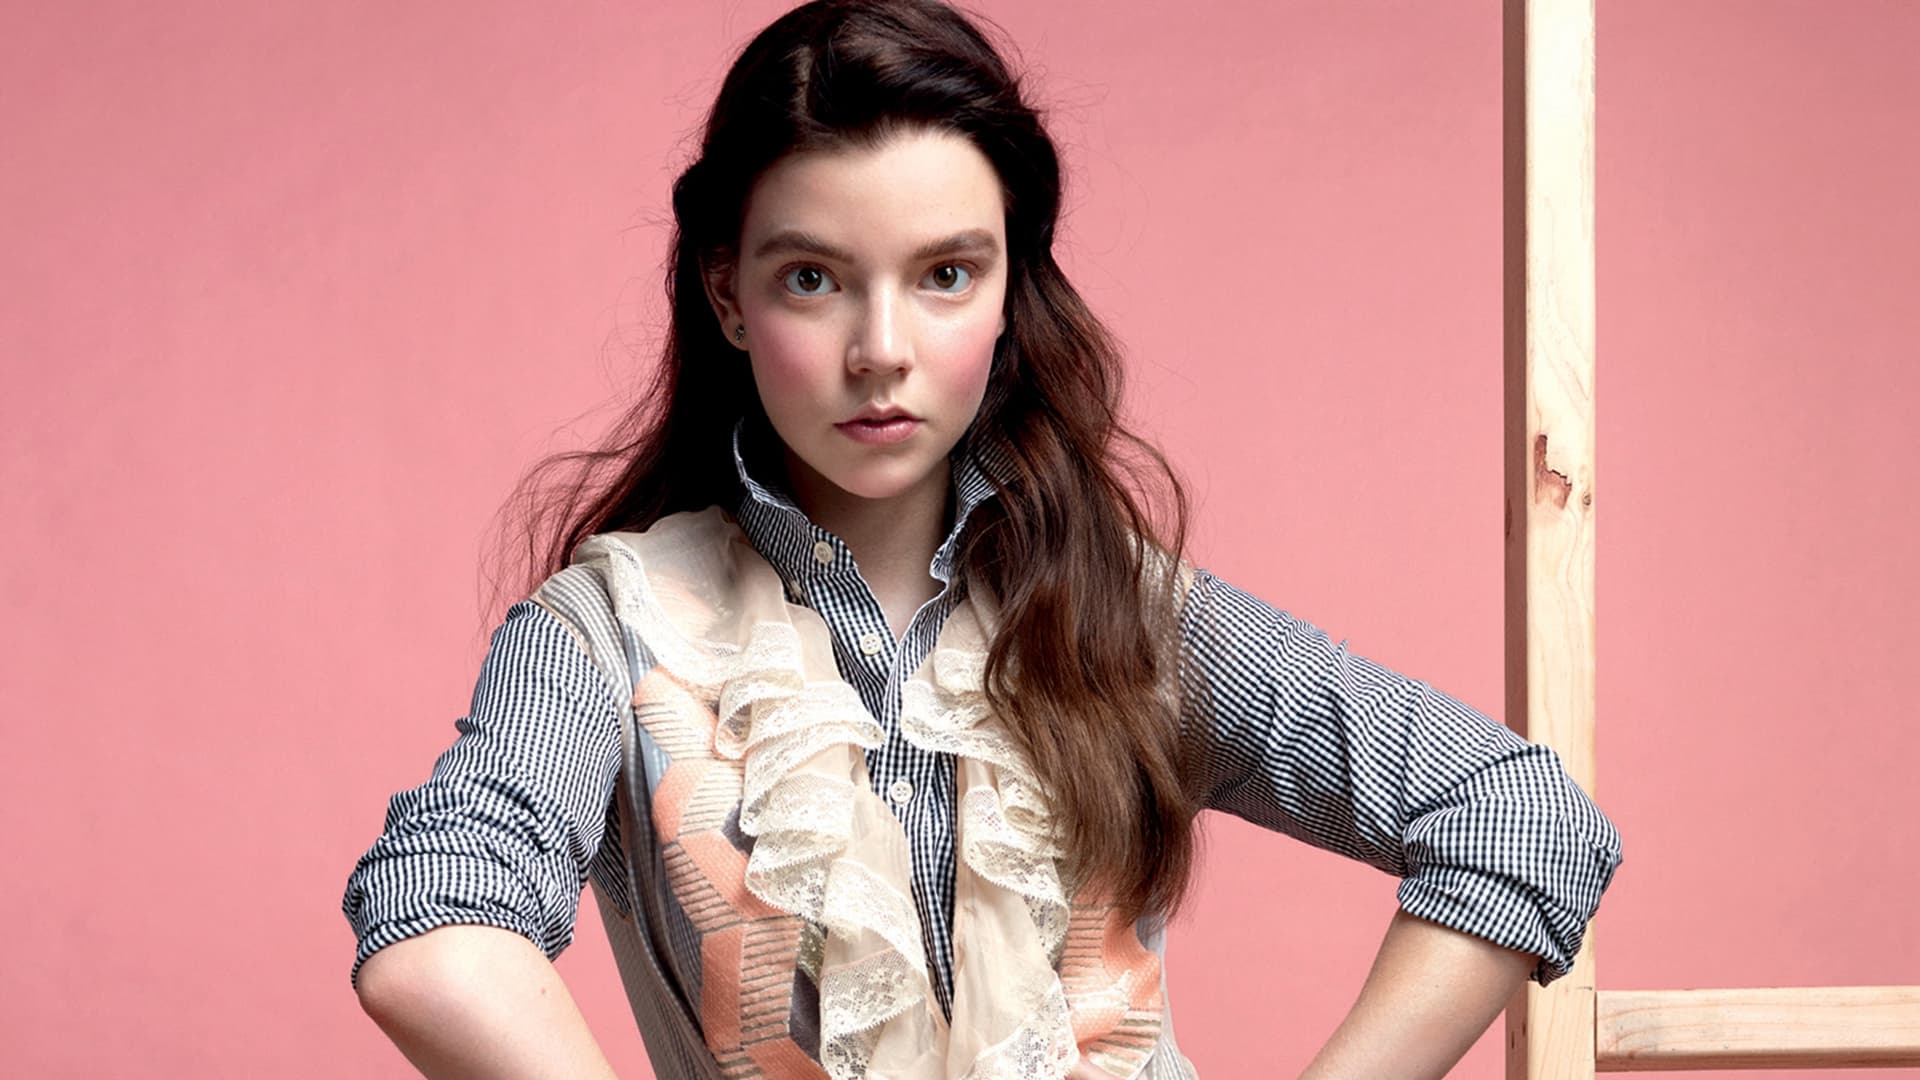 Anya Taylor-Joy kindertijd foto een via hdwallsource.com